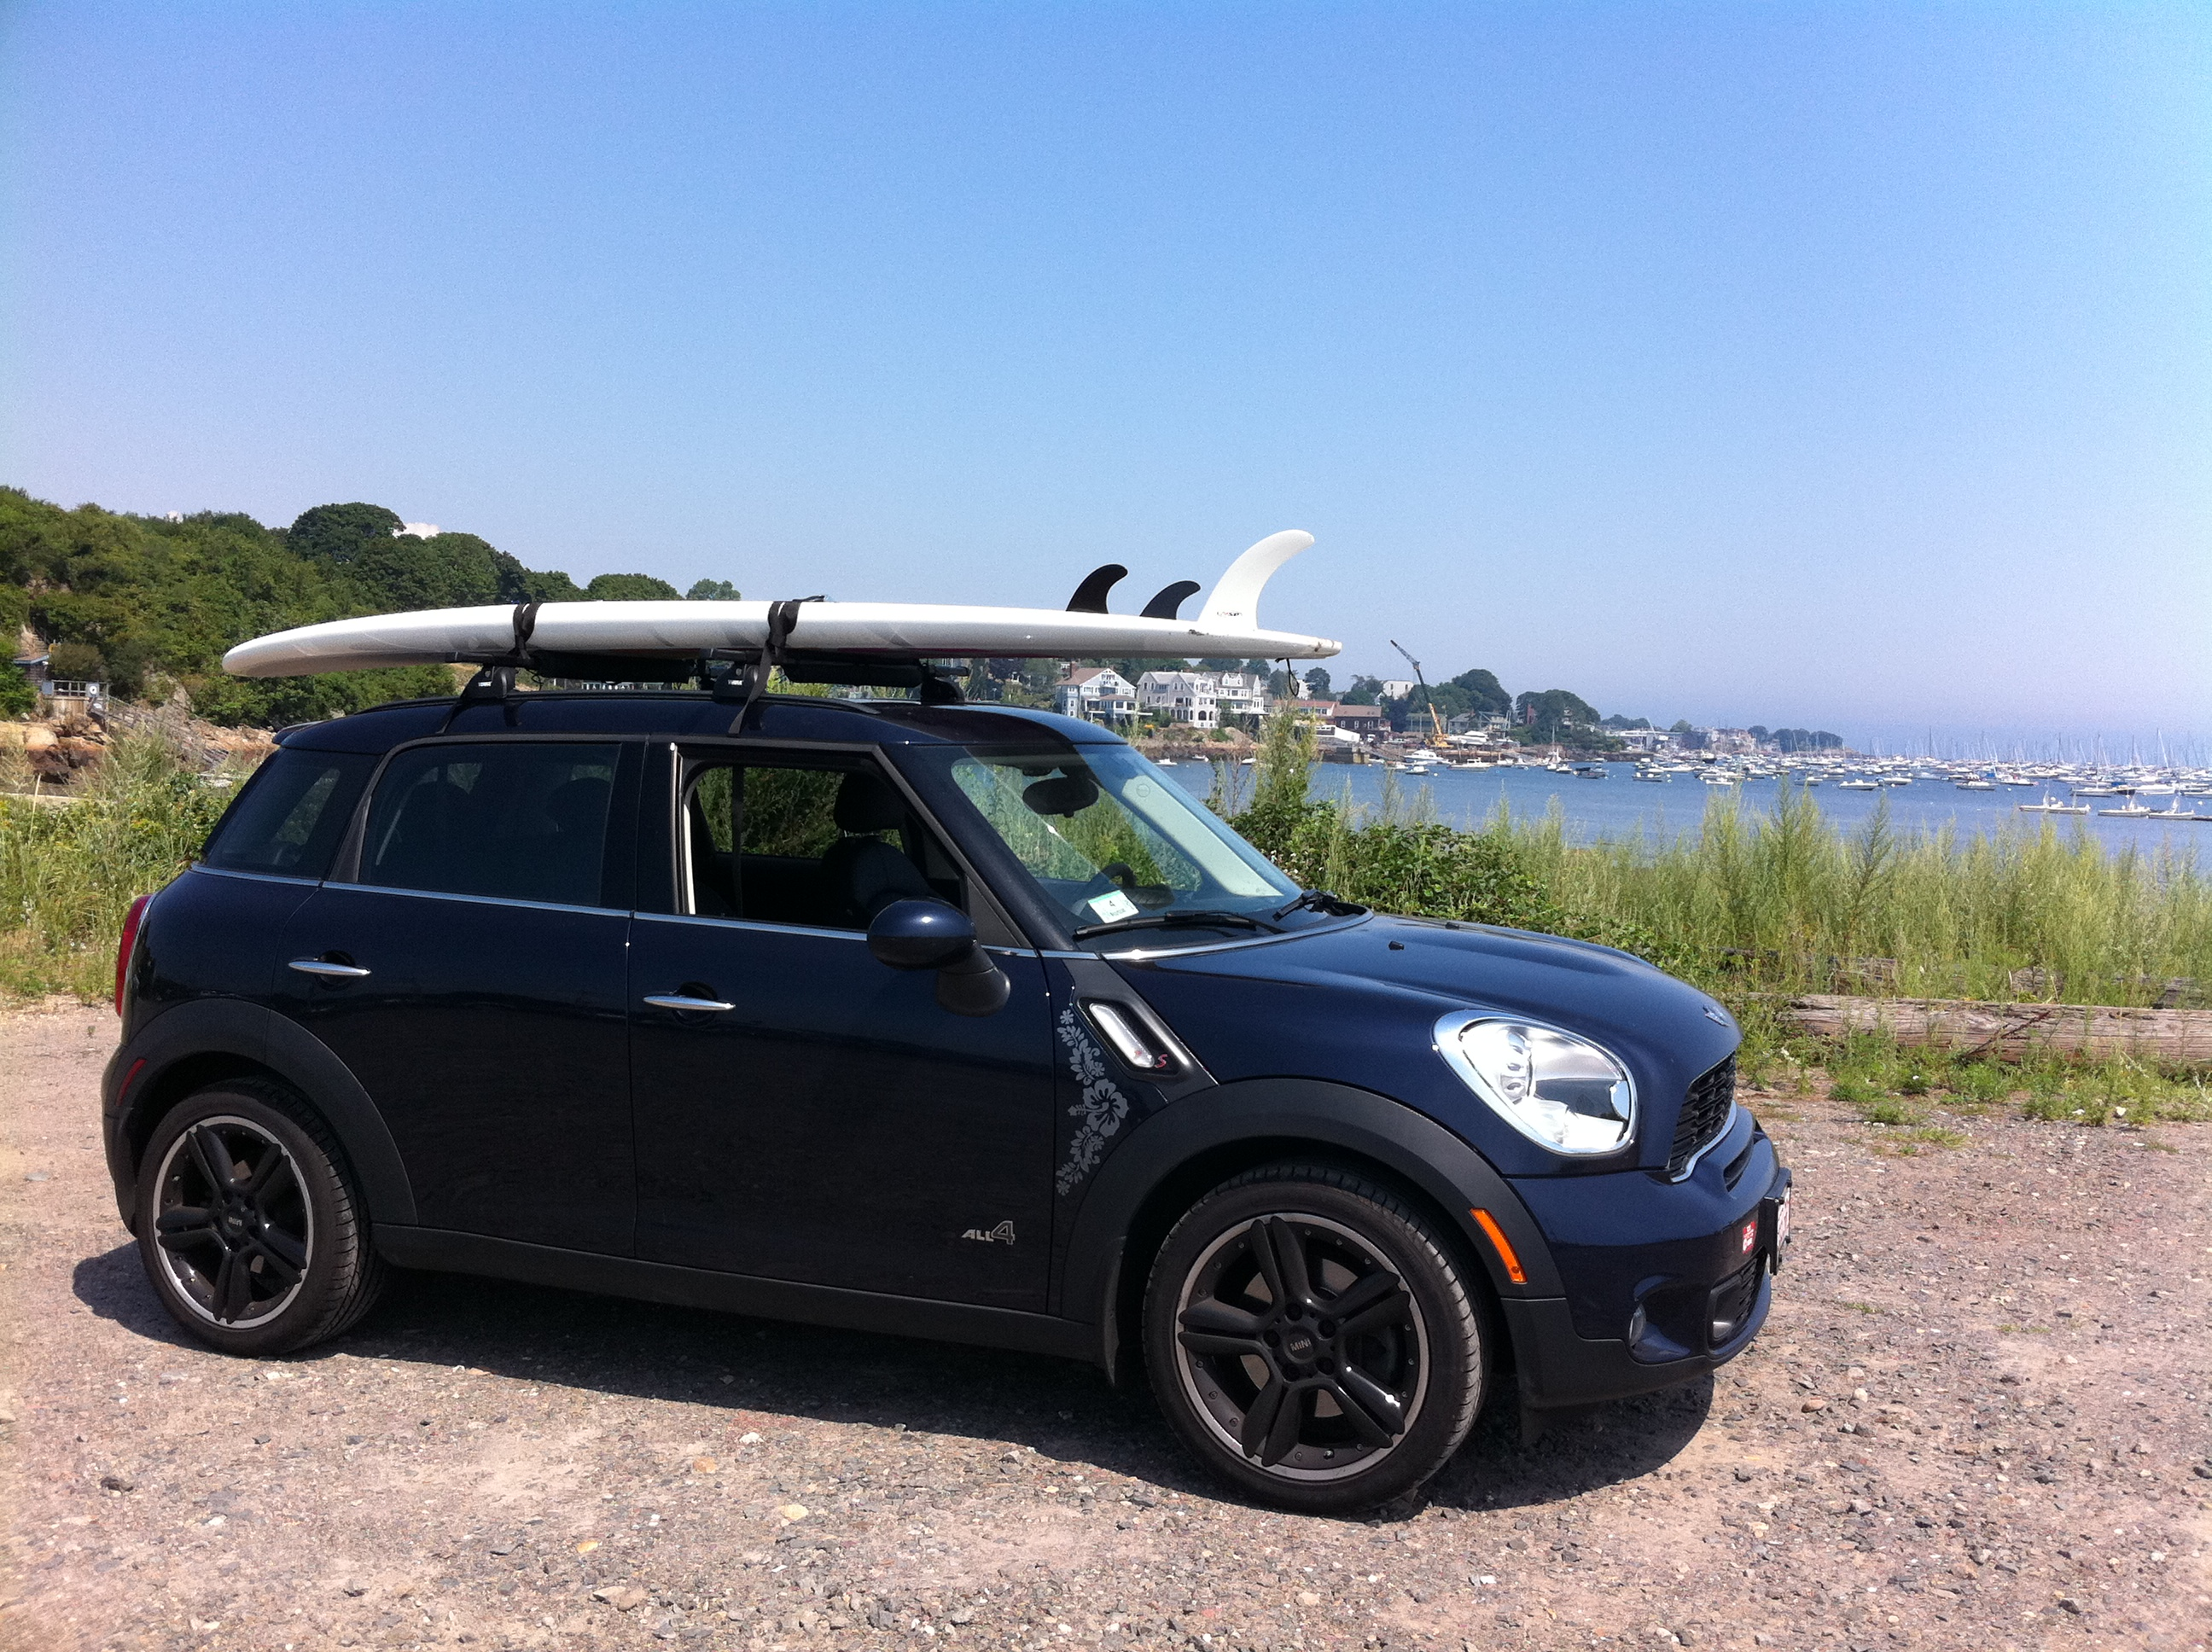 paddle up deluxe stand kit a boards ask question this board rack about car product paddleboard